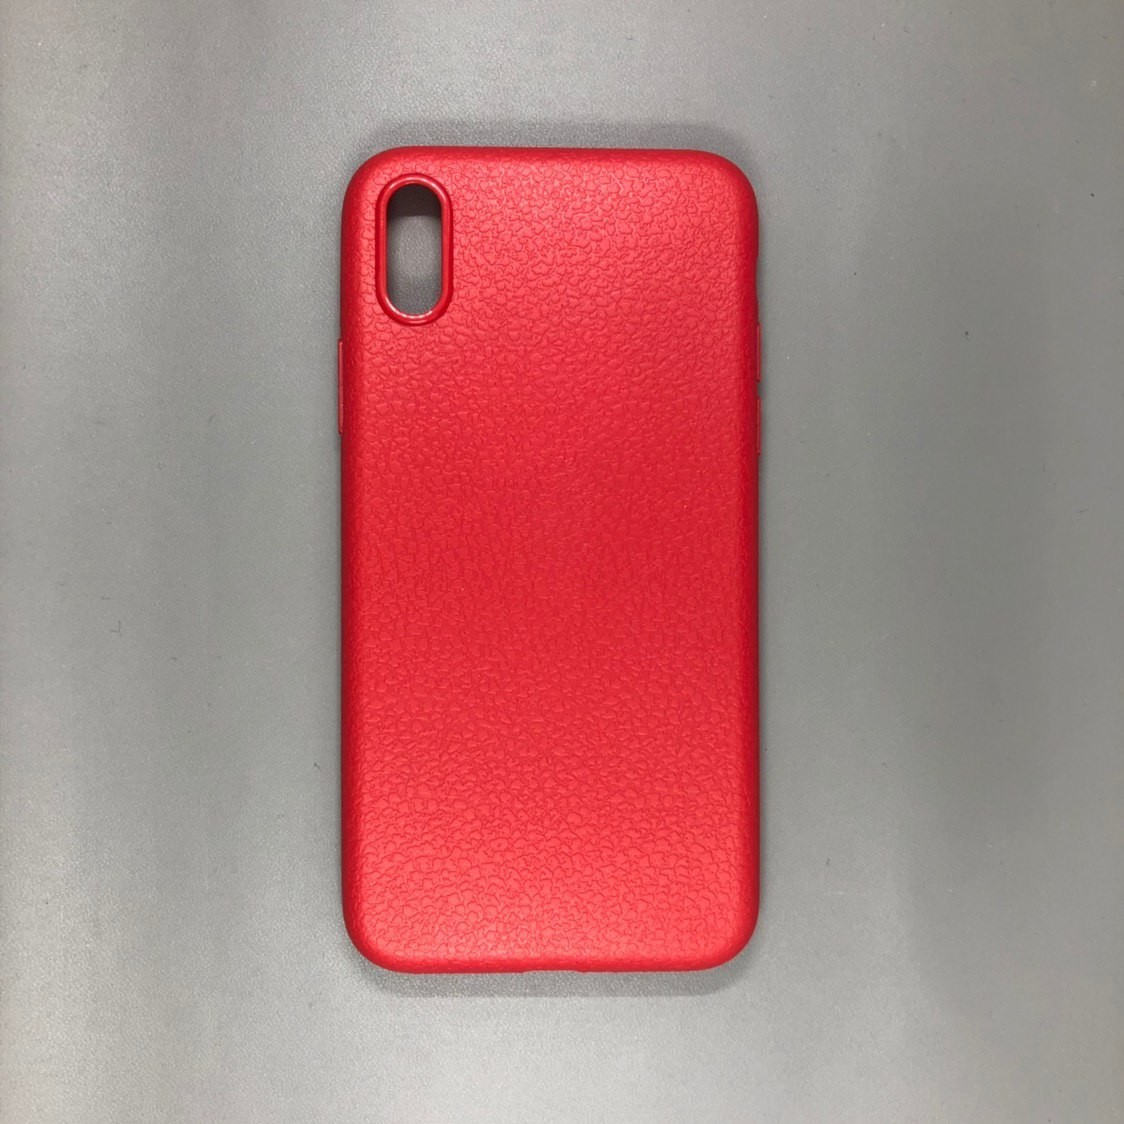 iPhone X Plastic Red